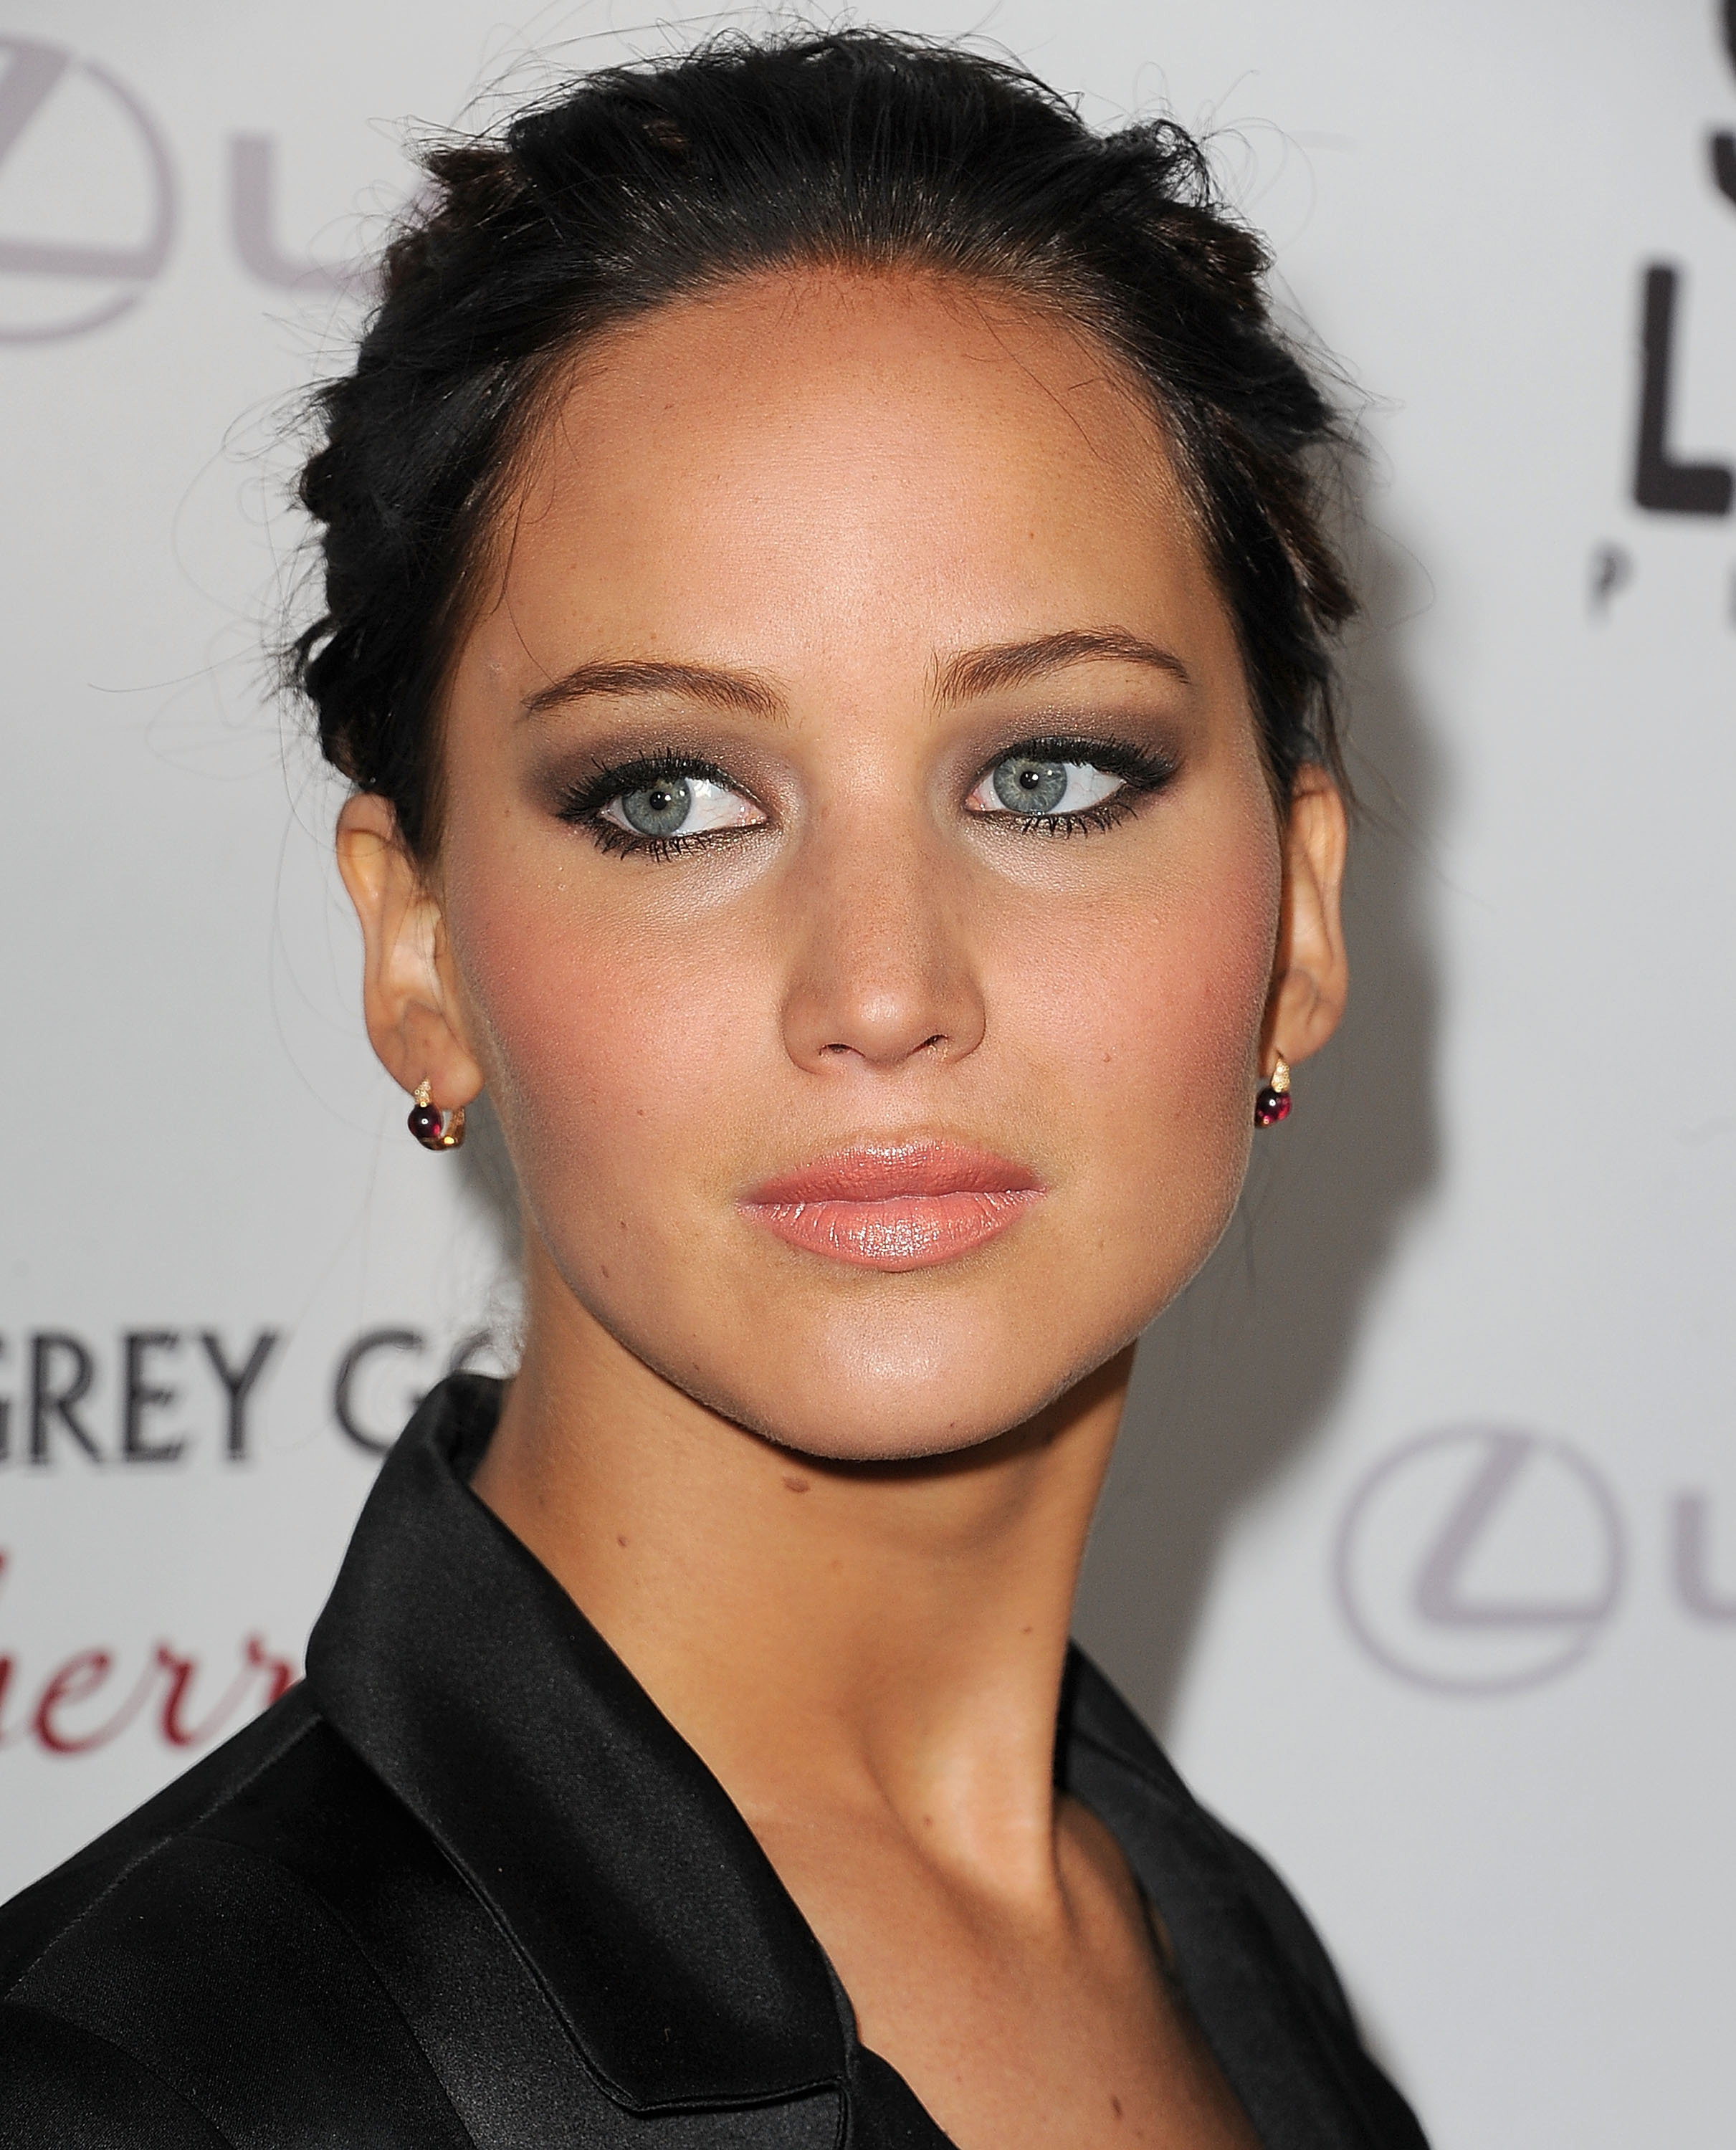 Jennifer Lawrence The 9 Best Beauty Moments Of The Week